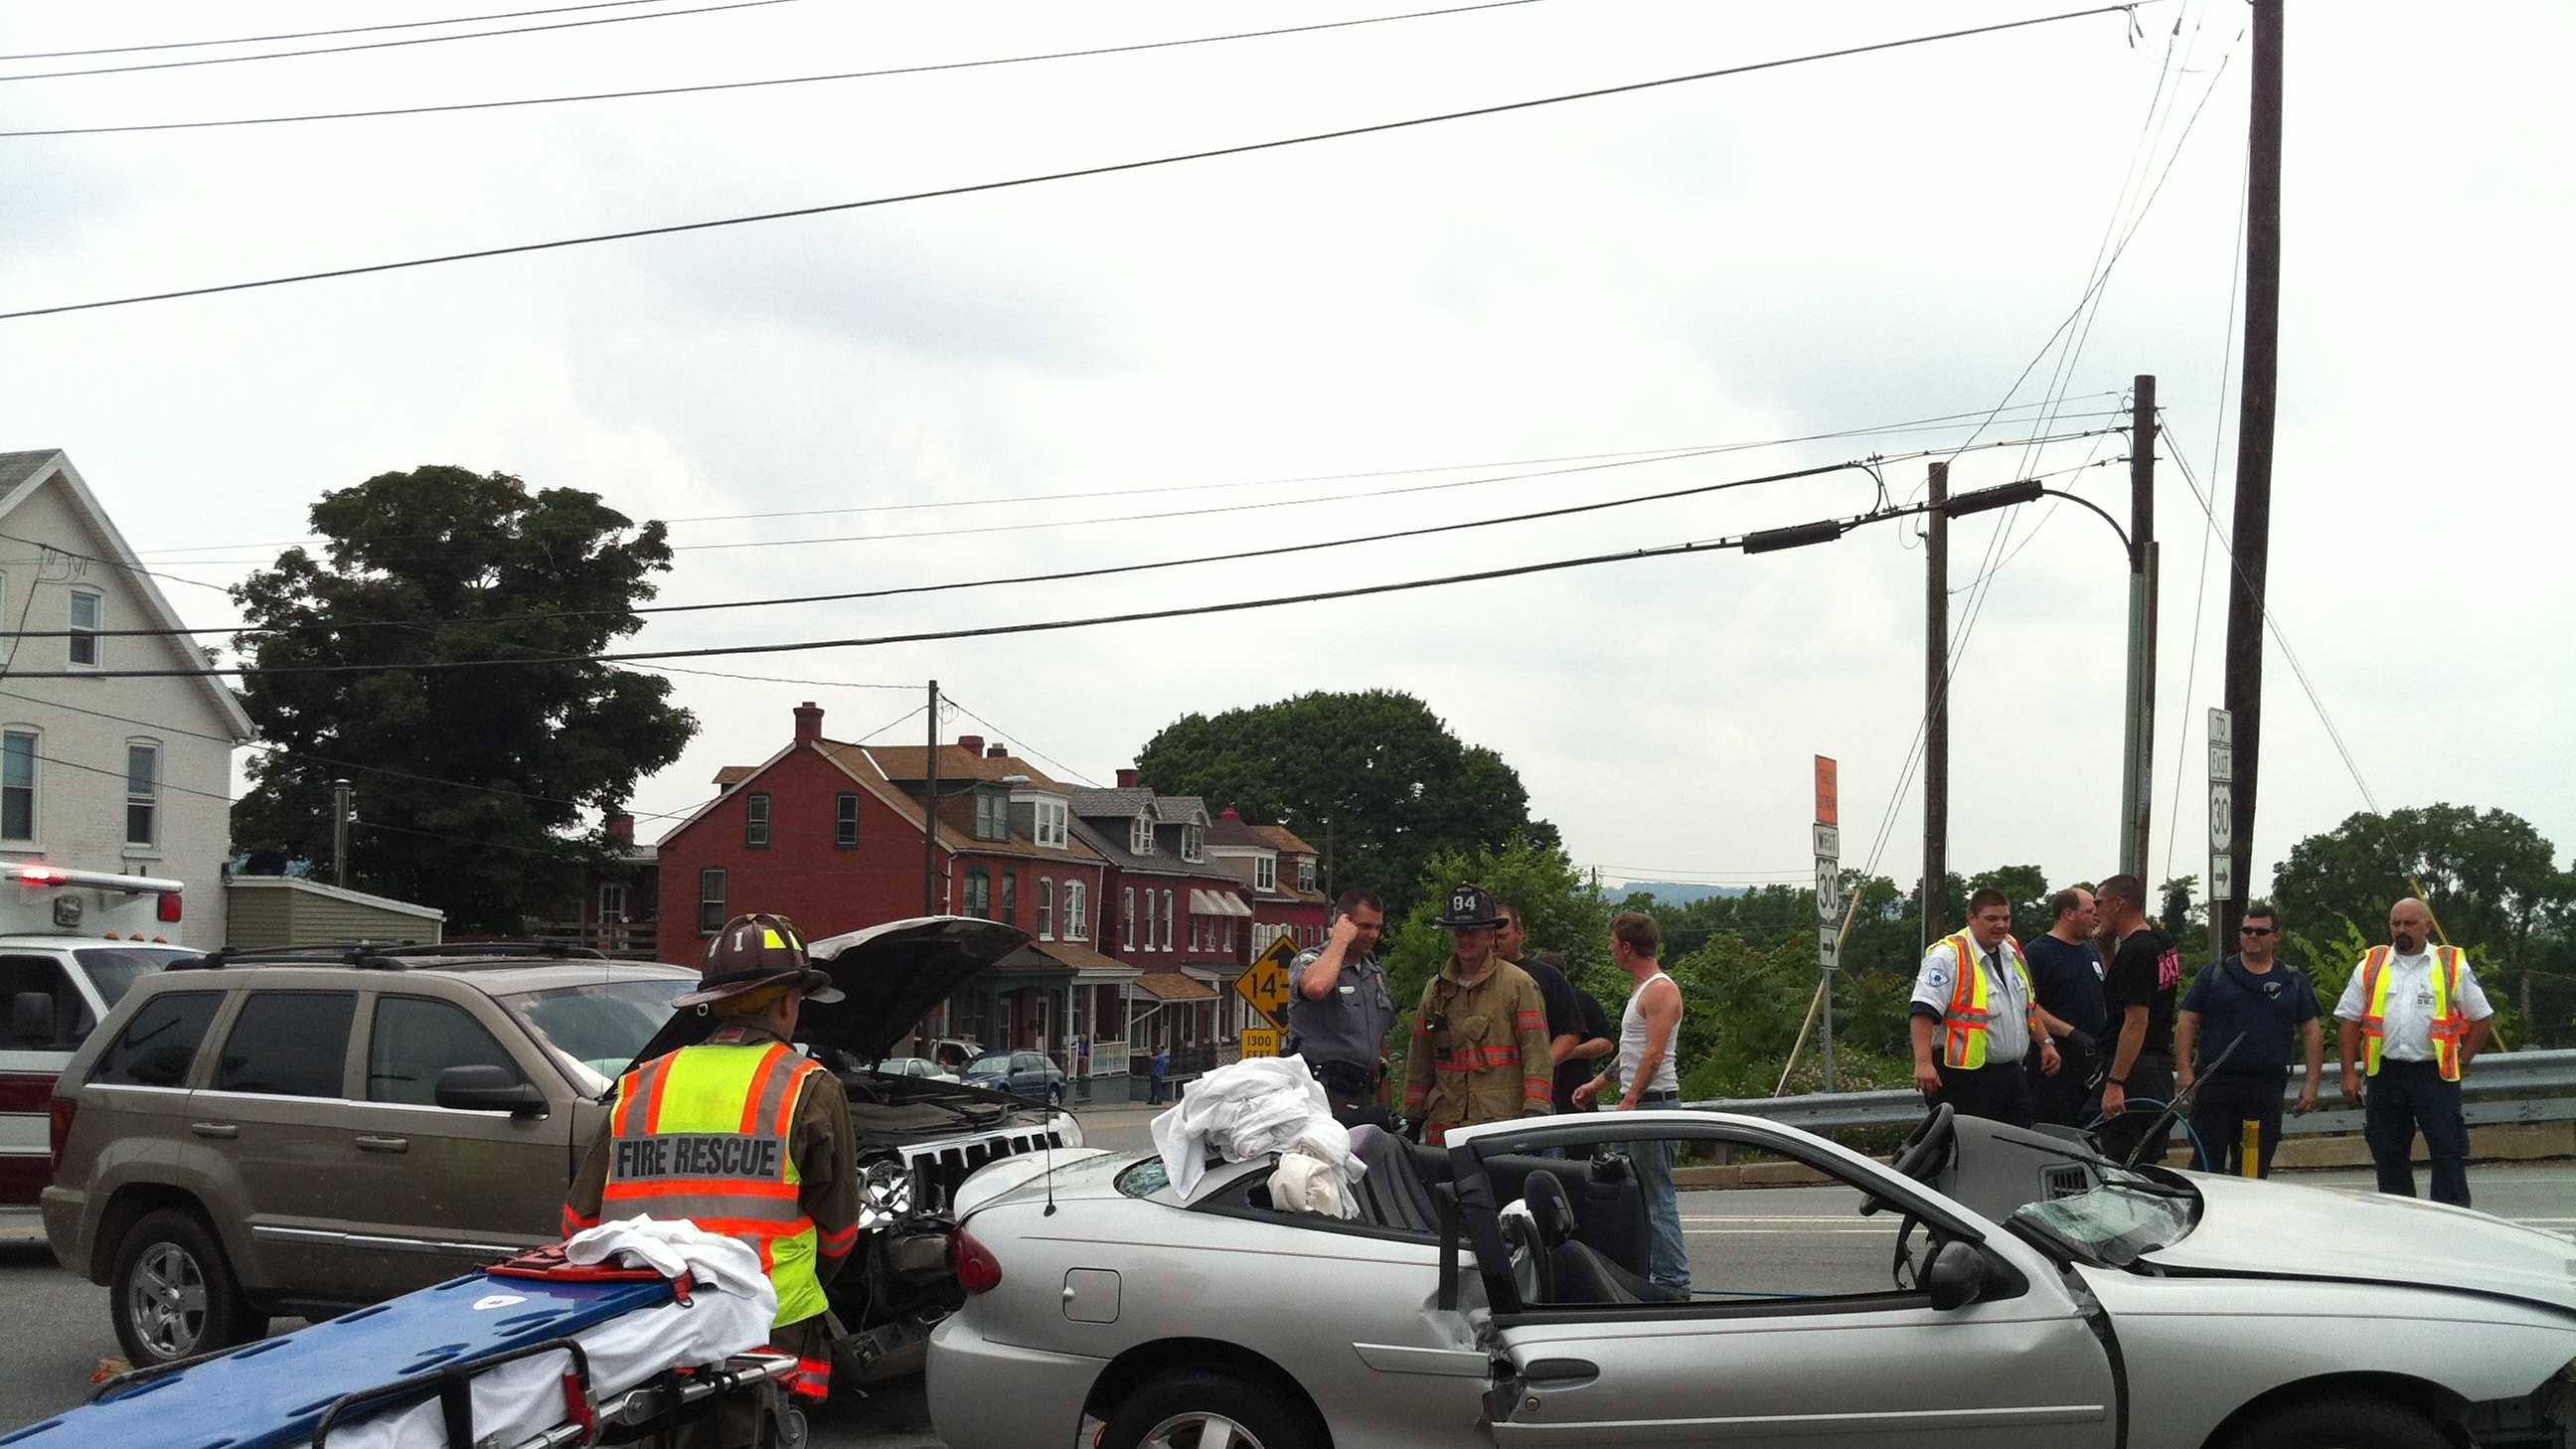 Car crash occurred at North Third Street and Avenue C in Columbia Borough.